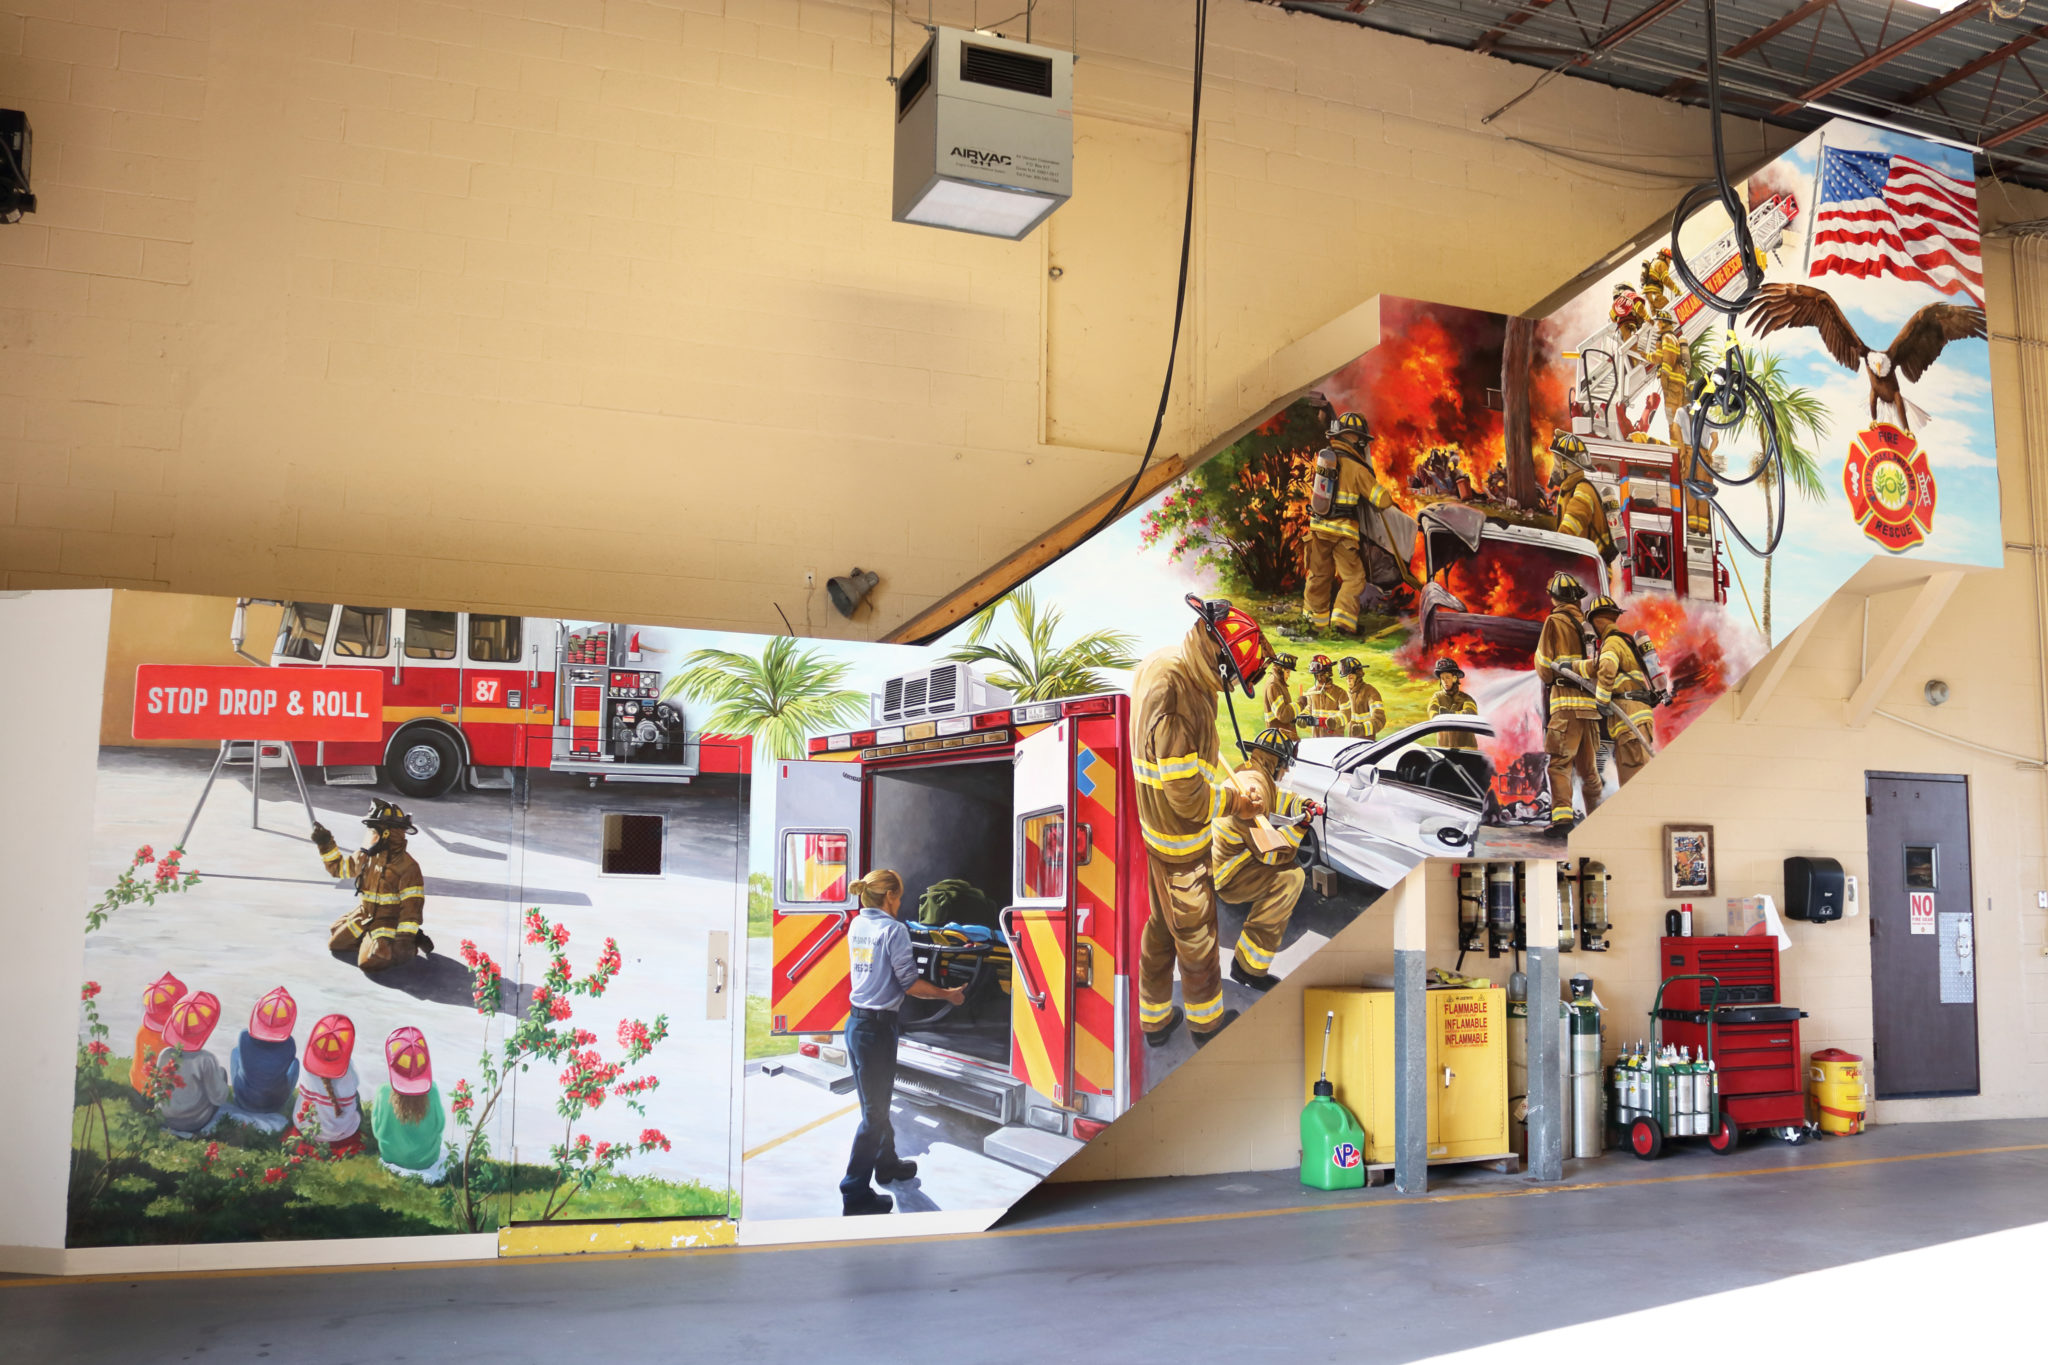 South Florida Muralist For Hire, Wall Mural Large Acrylic Mural On Wall  With Firefighters Activities Part 56